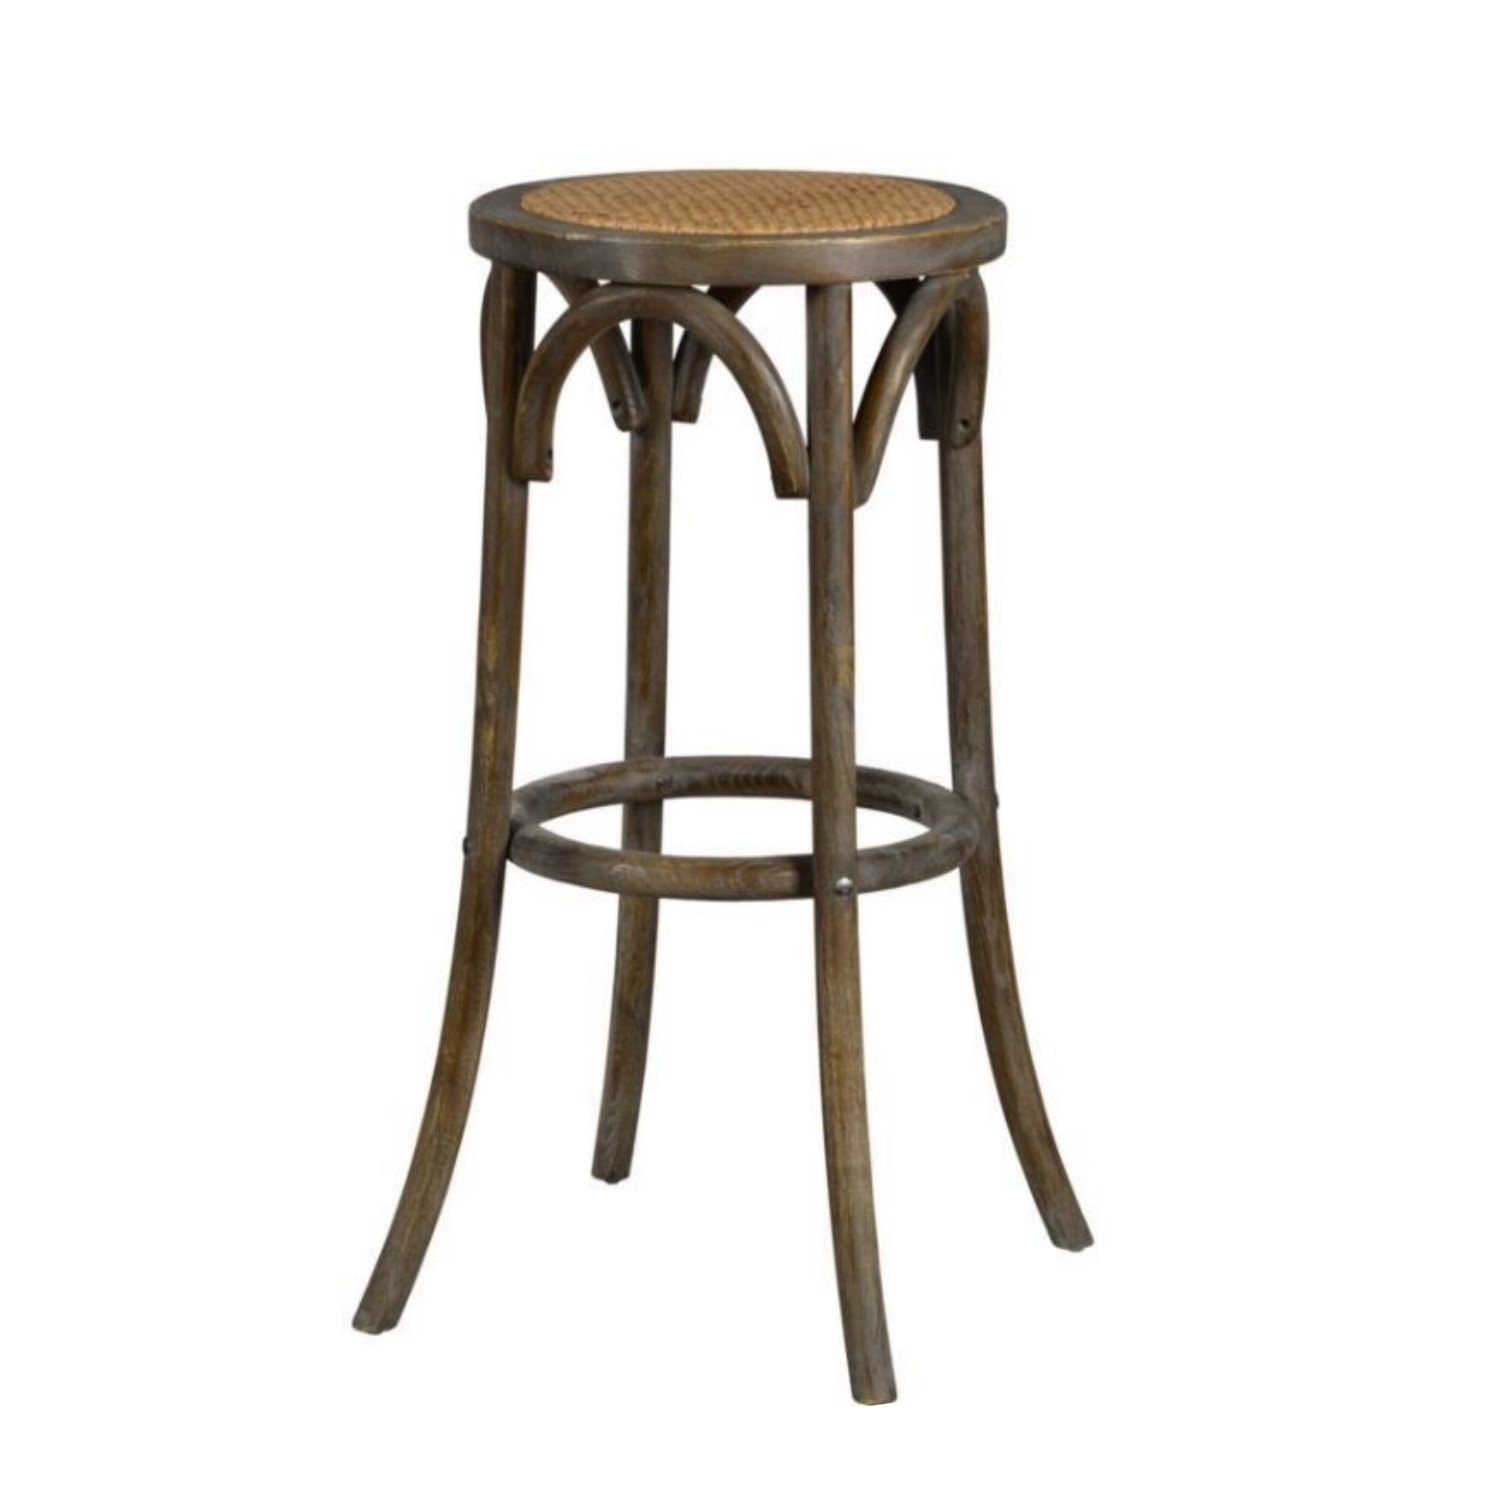 Awe Inspiring Backless Bar Stool Country Style Wood And Rattan Construction Tavern Pub Seating Caraccident5 Cool Chair Designs And Ideas Caraccident5Info